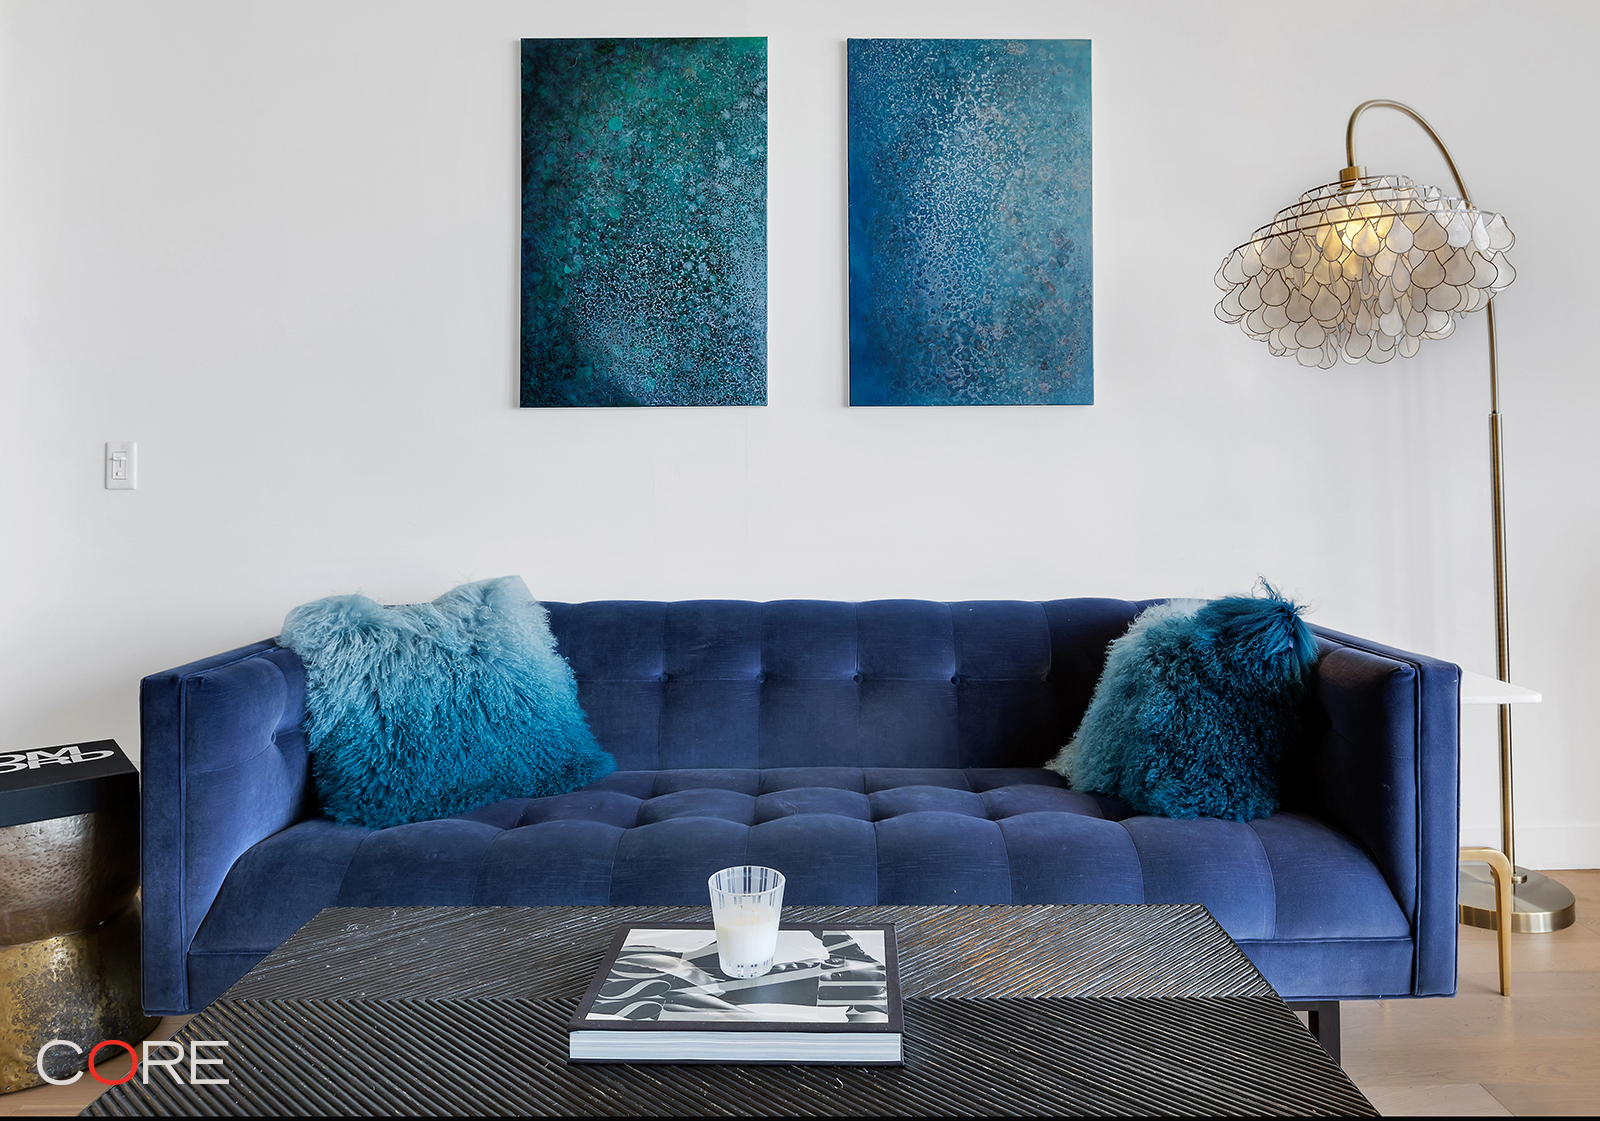 105 Duane Street, Apt 30-F, Manhattan, New York 10007